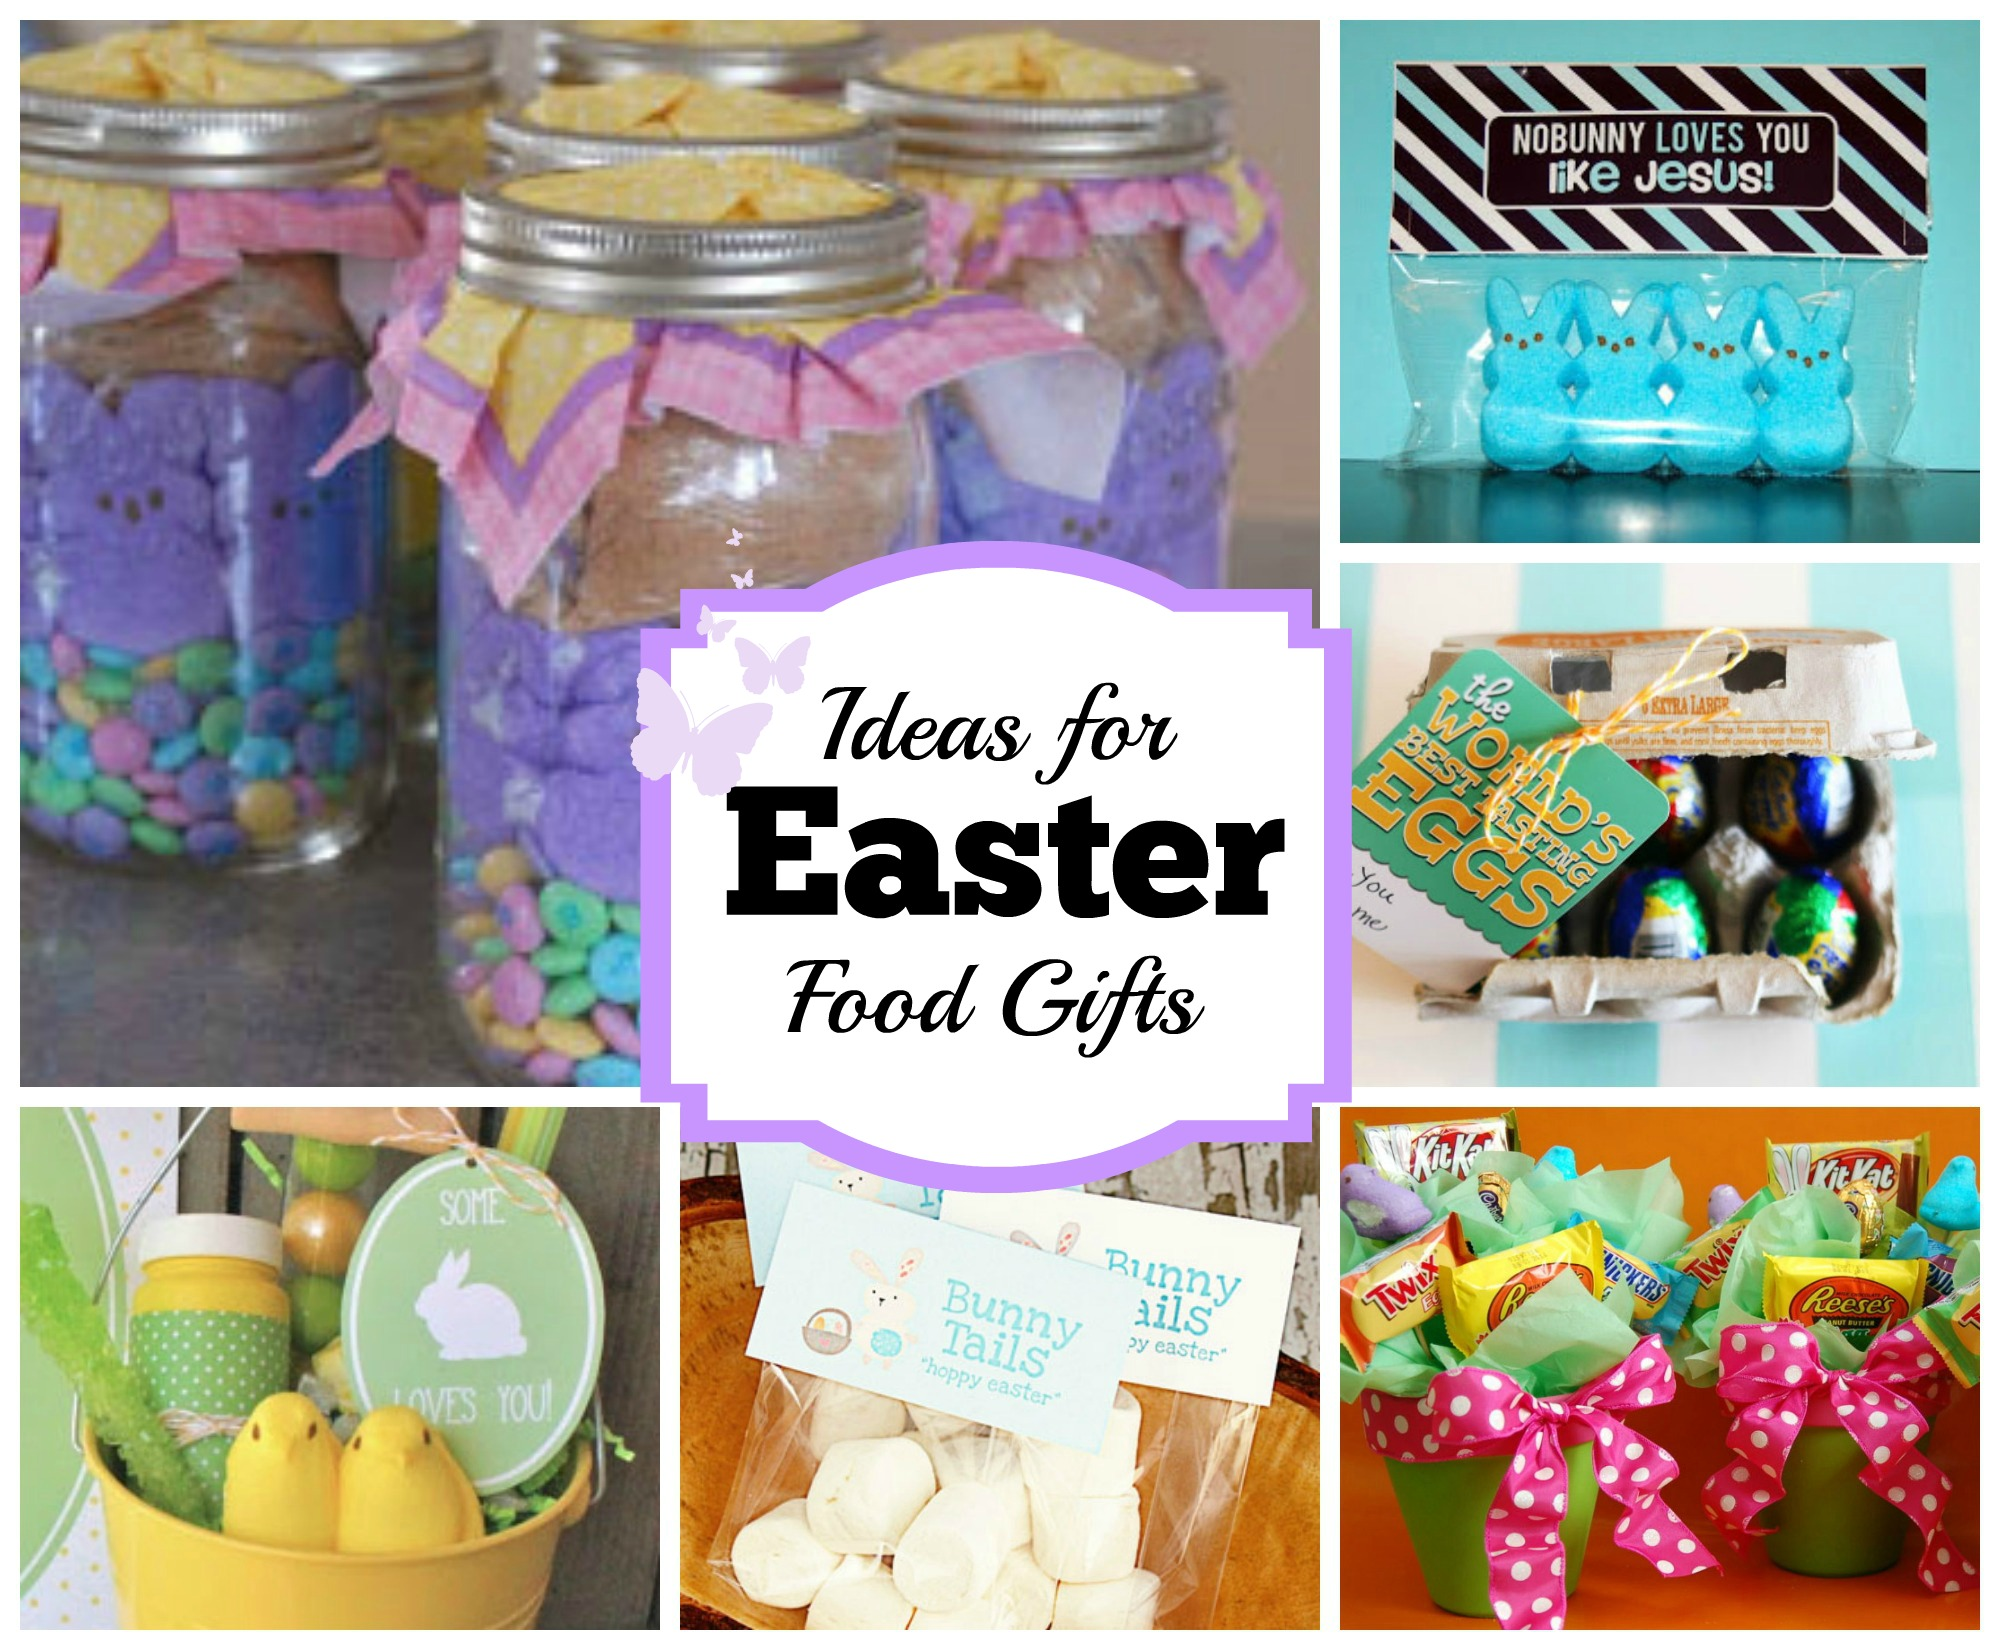 DIY Easter Food Gift Ideas | Celebrating Holidays